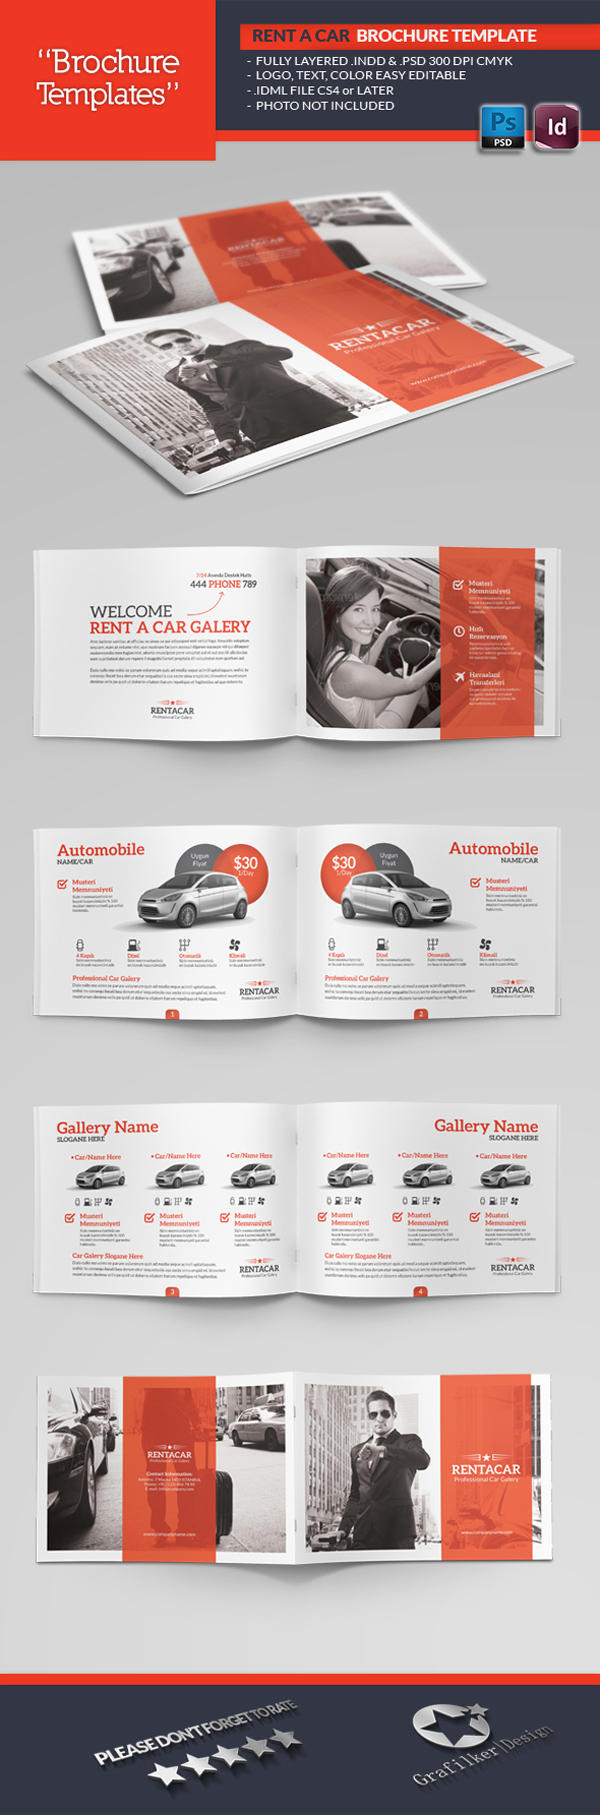 Professional brochure templates by grafilker on envato studio for Professional brochure design templates